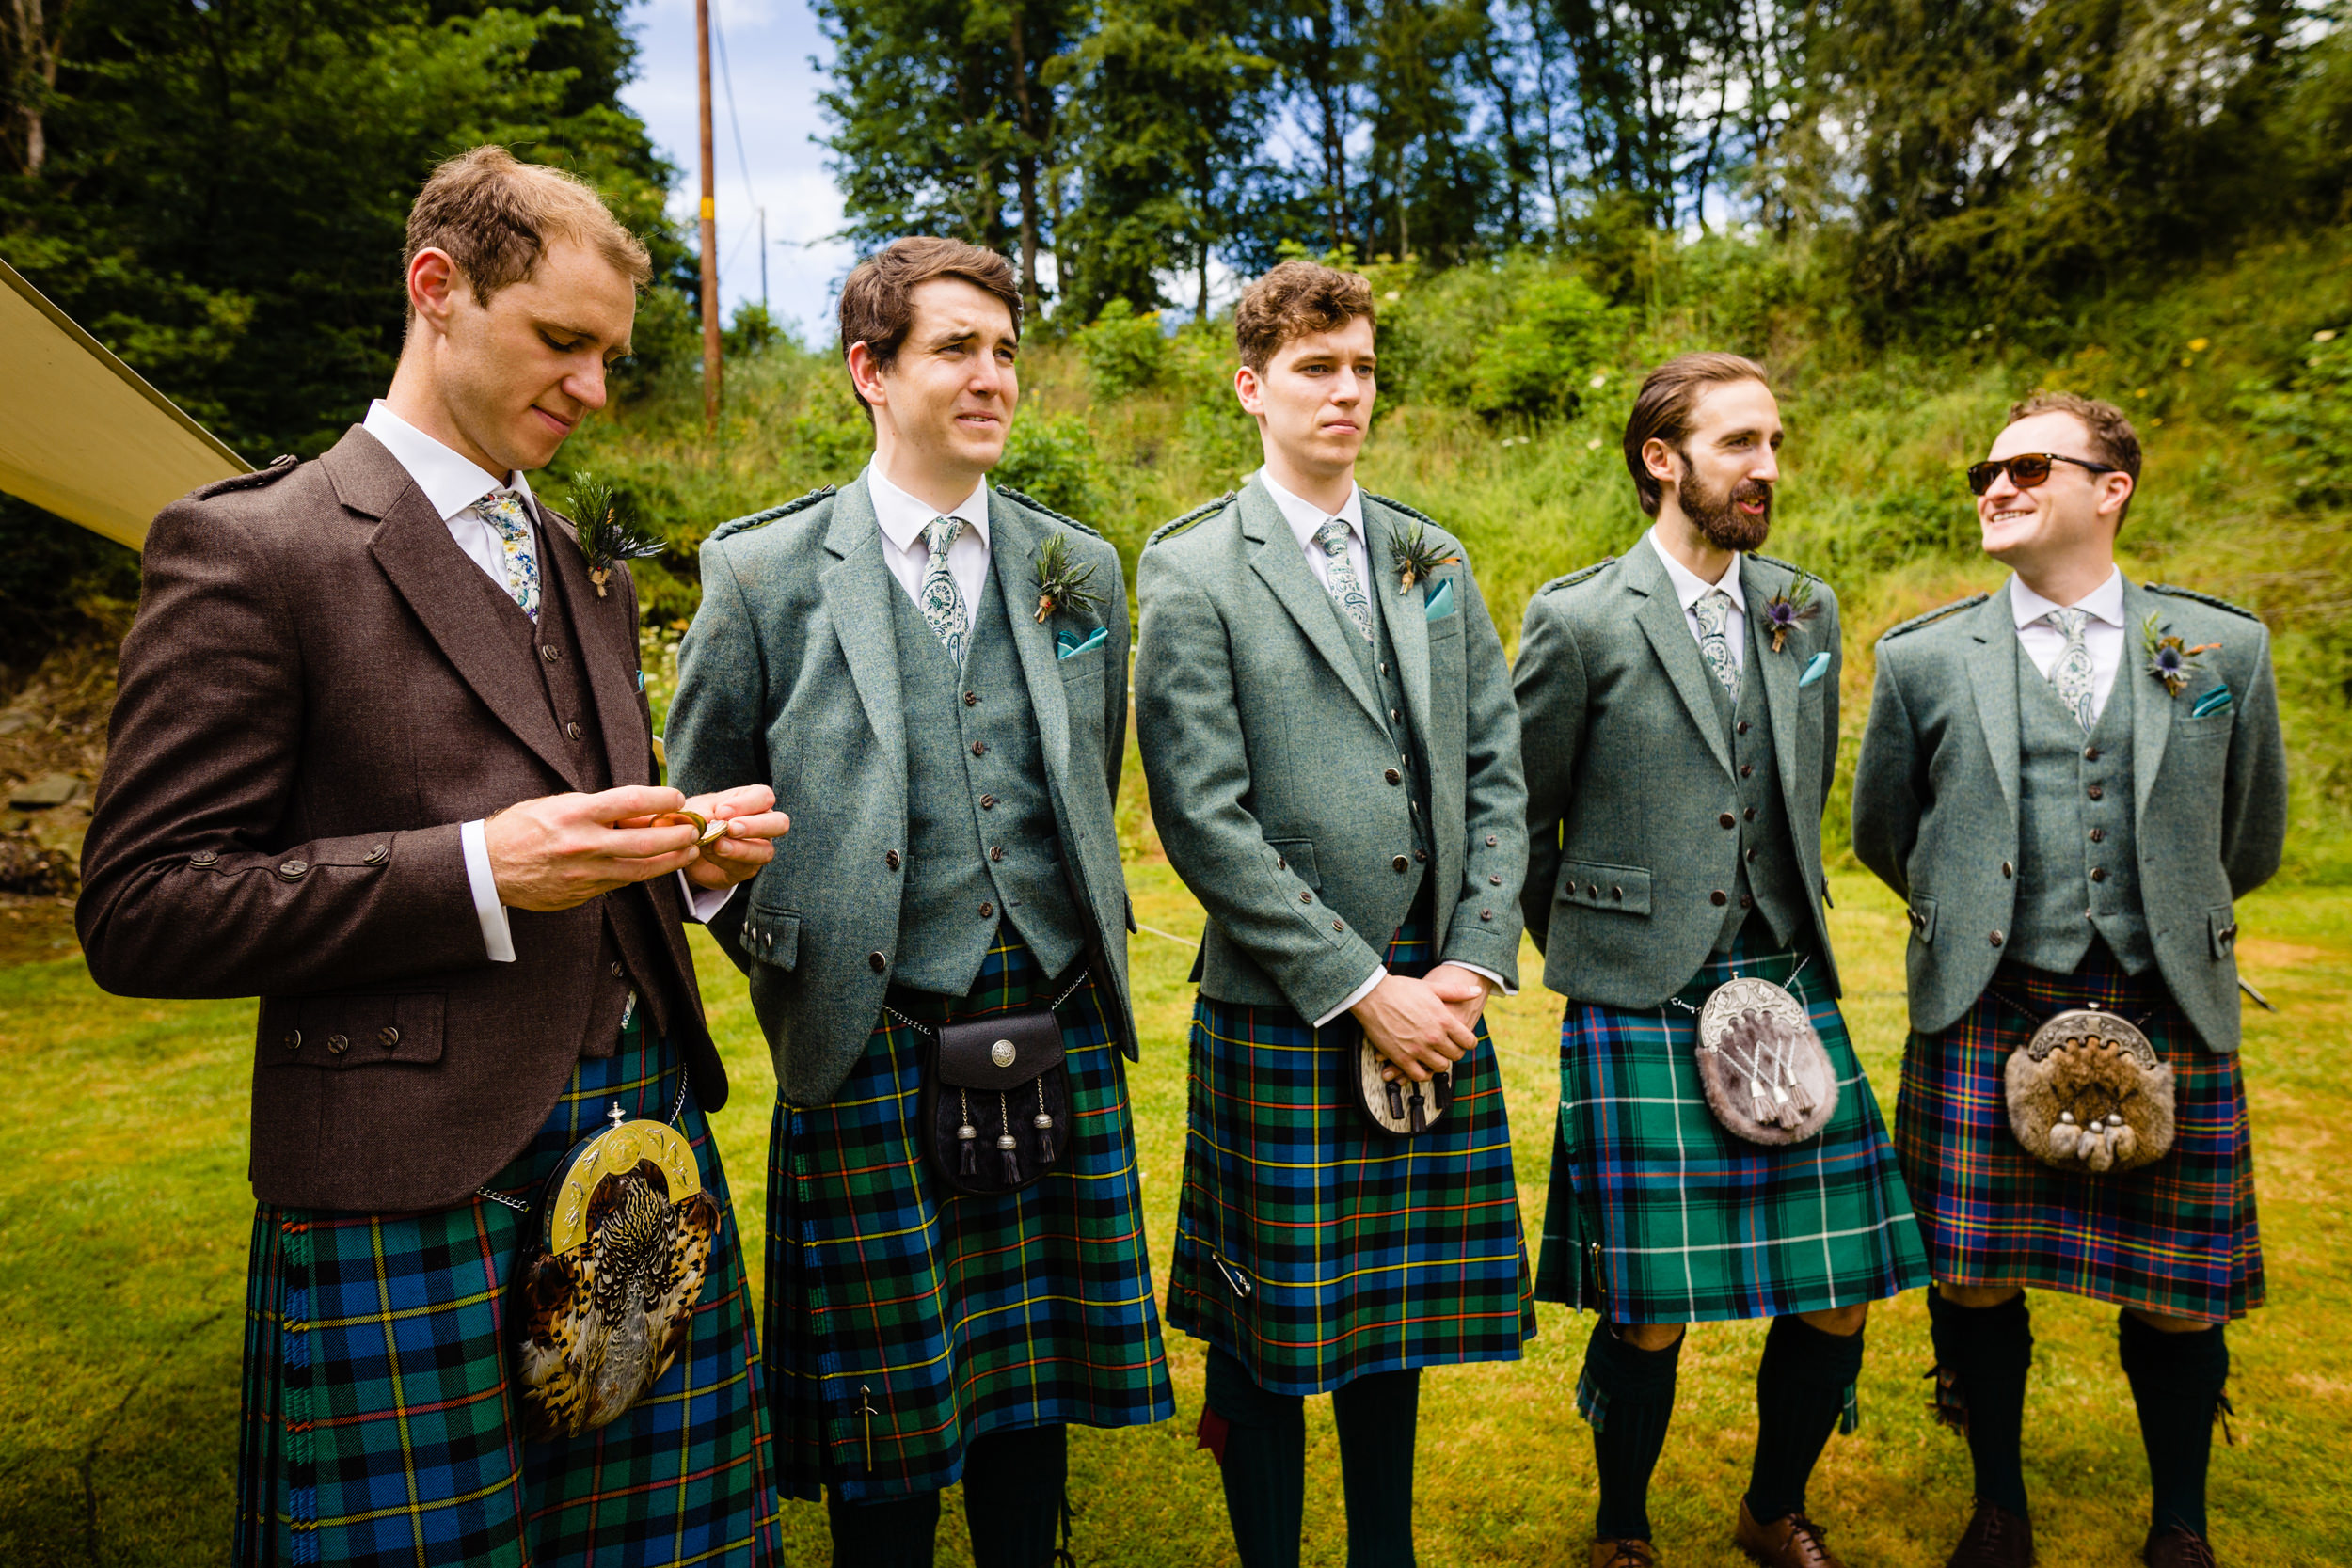 groom checking pocket watch. scotland wedding photography by emma and rich.